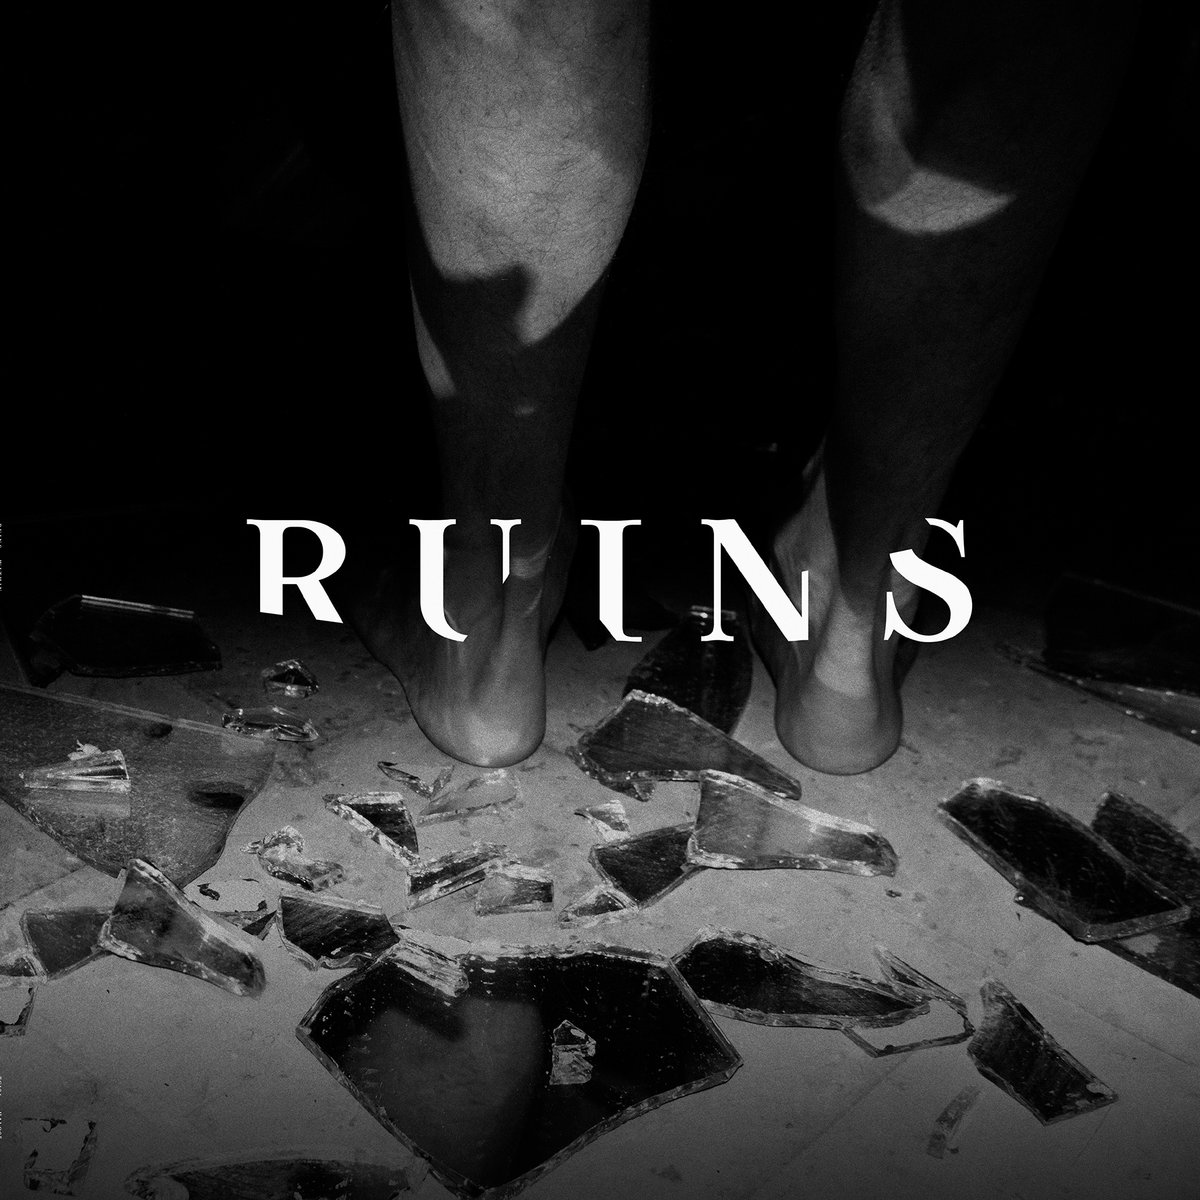 Ruins - The Burden @ 'Within' album (bielefeld, metal)